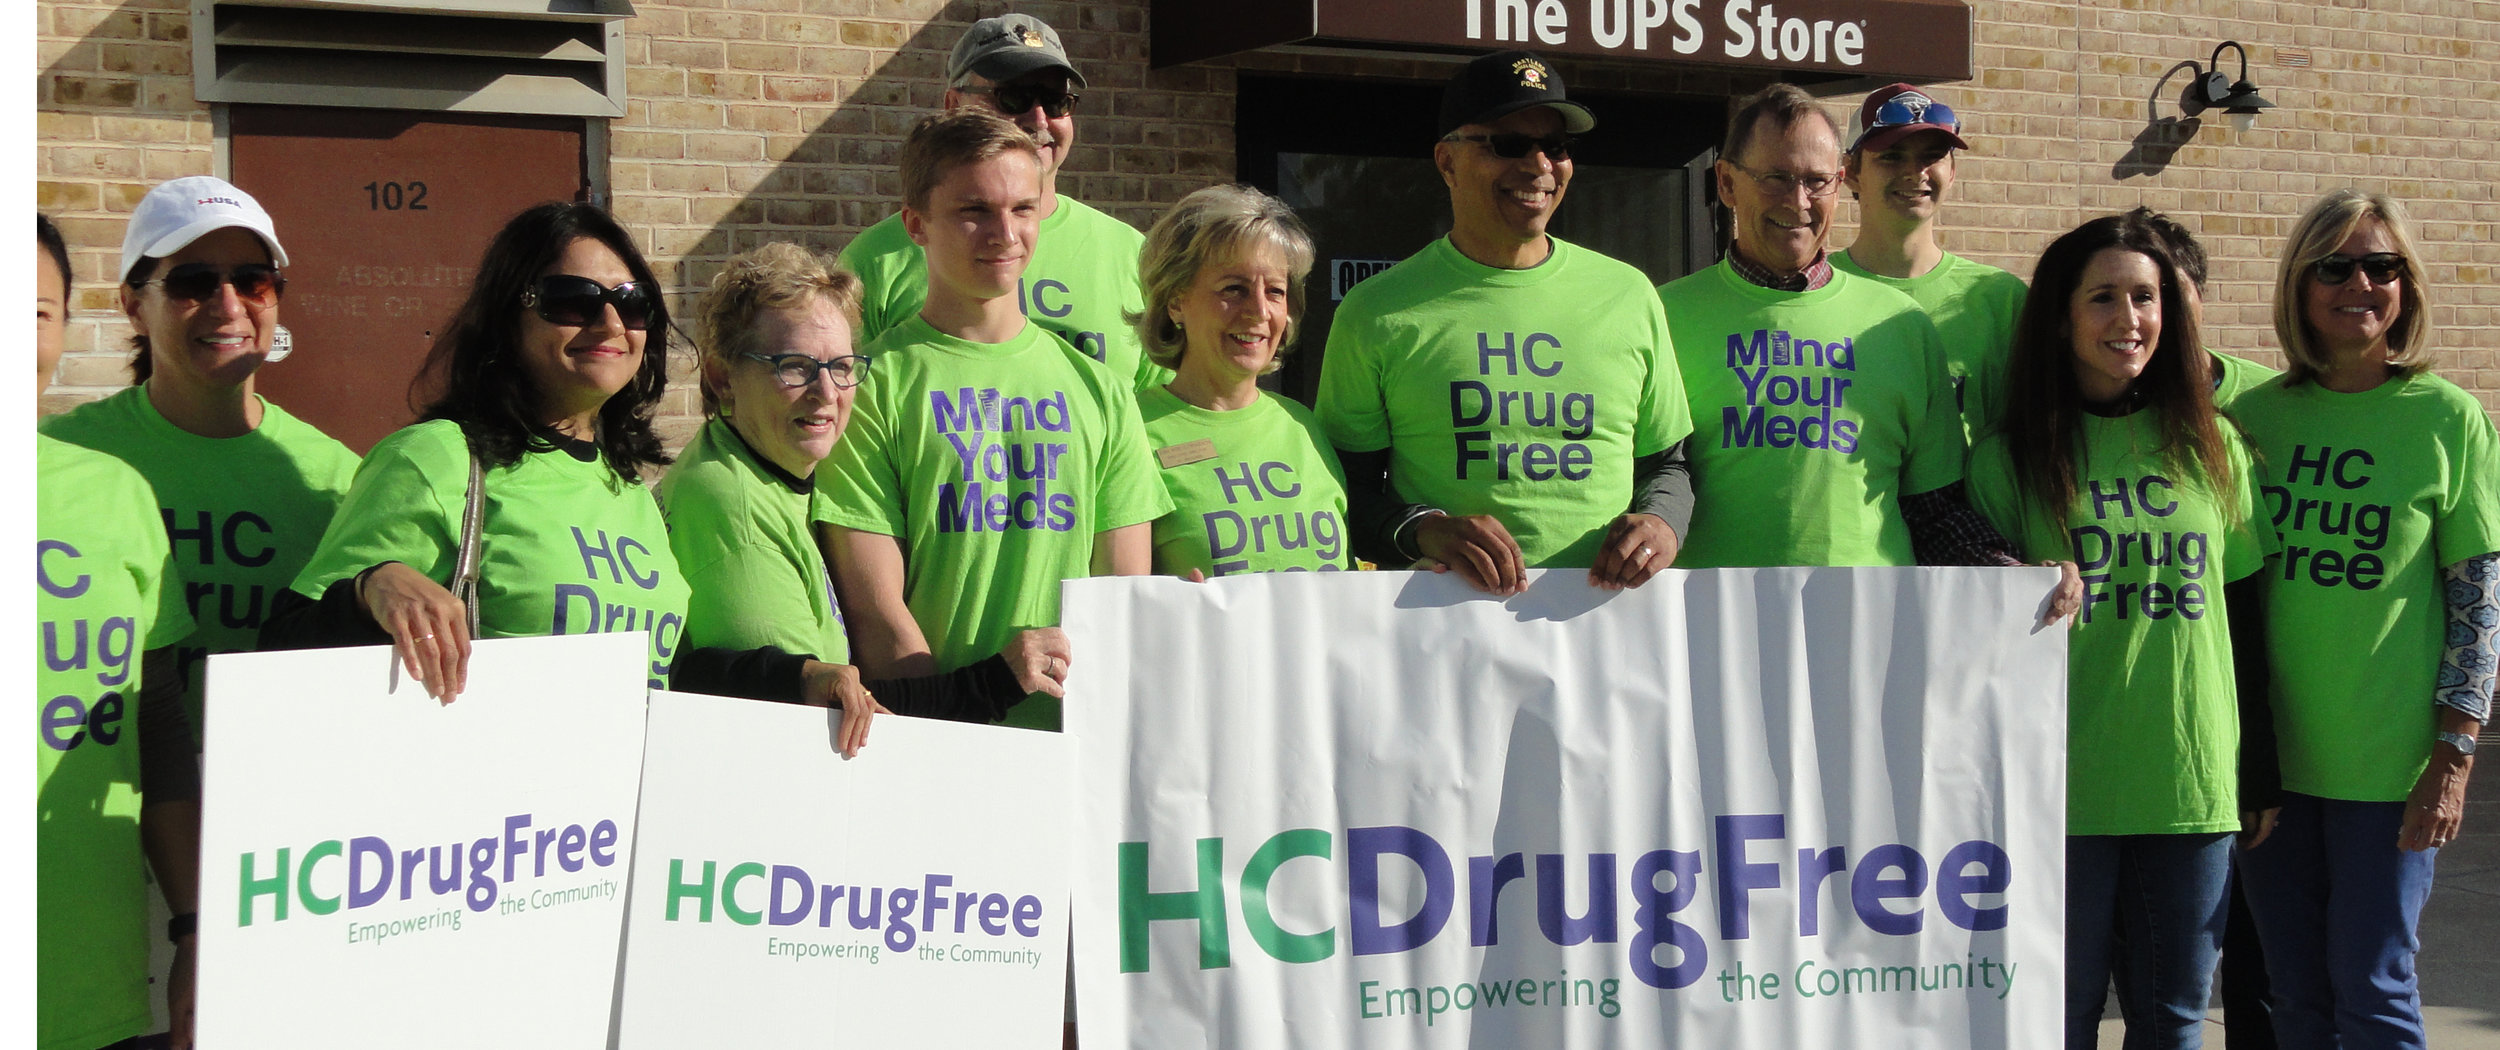 Members of HC DrugFree's team including MD Lt. Governor Boyd Rutherford